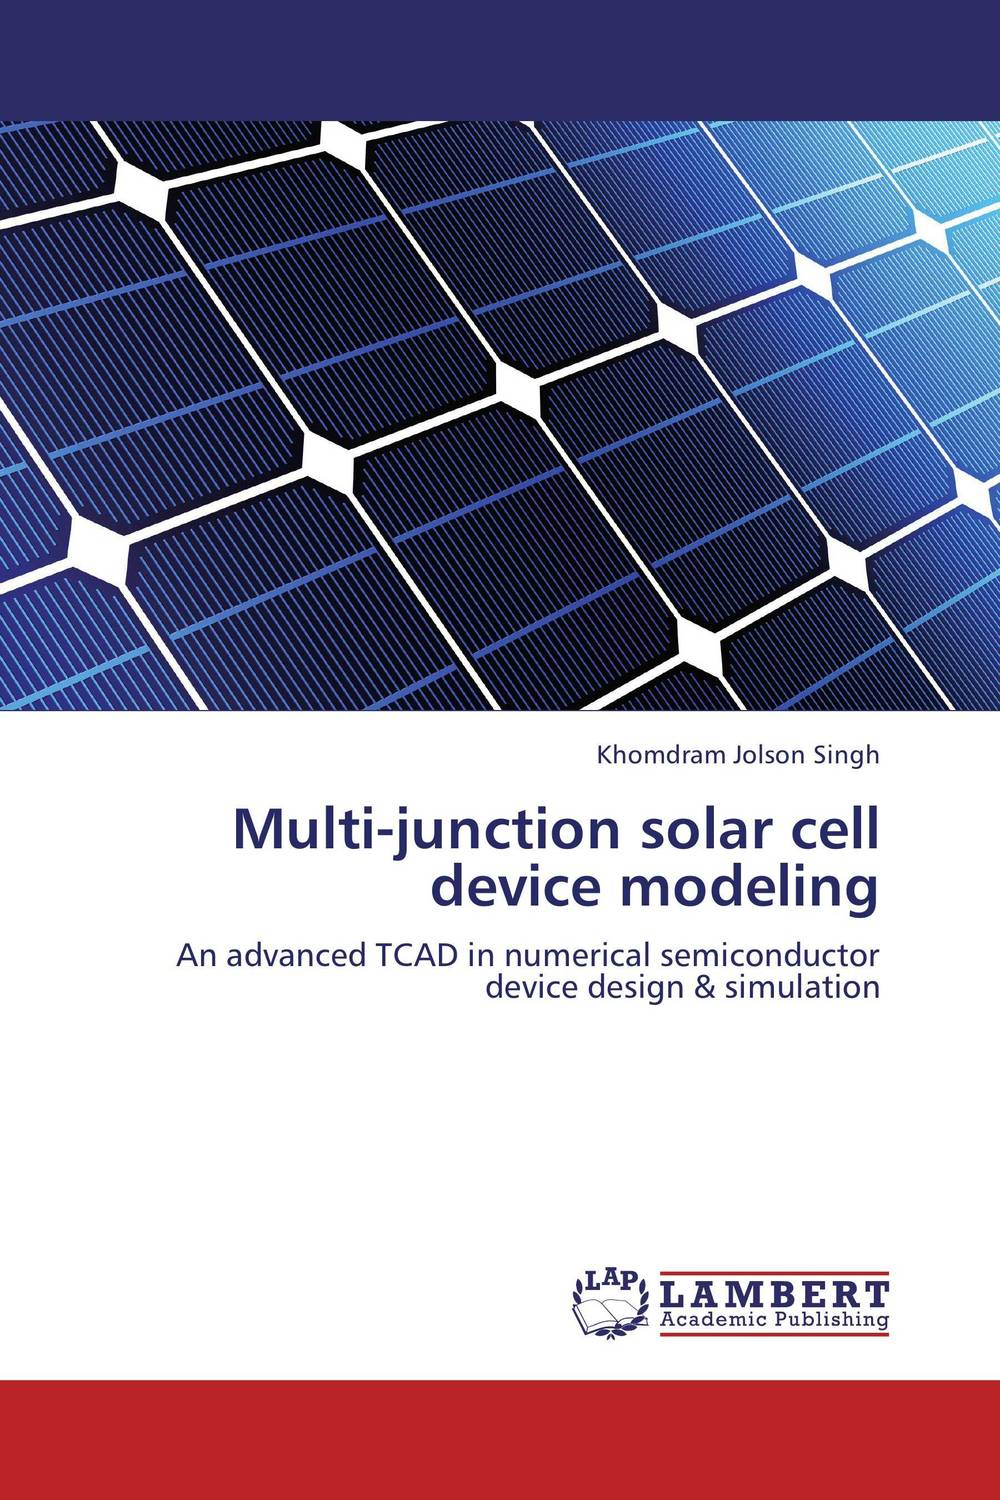 Multi-junction solar cell device modeling